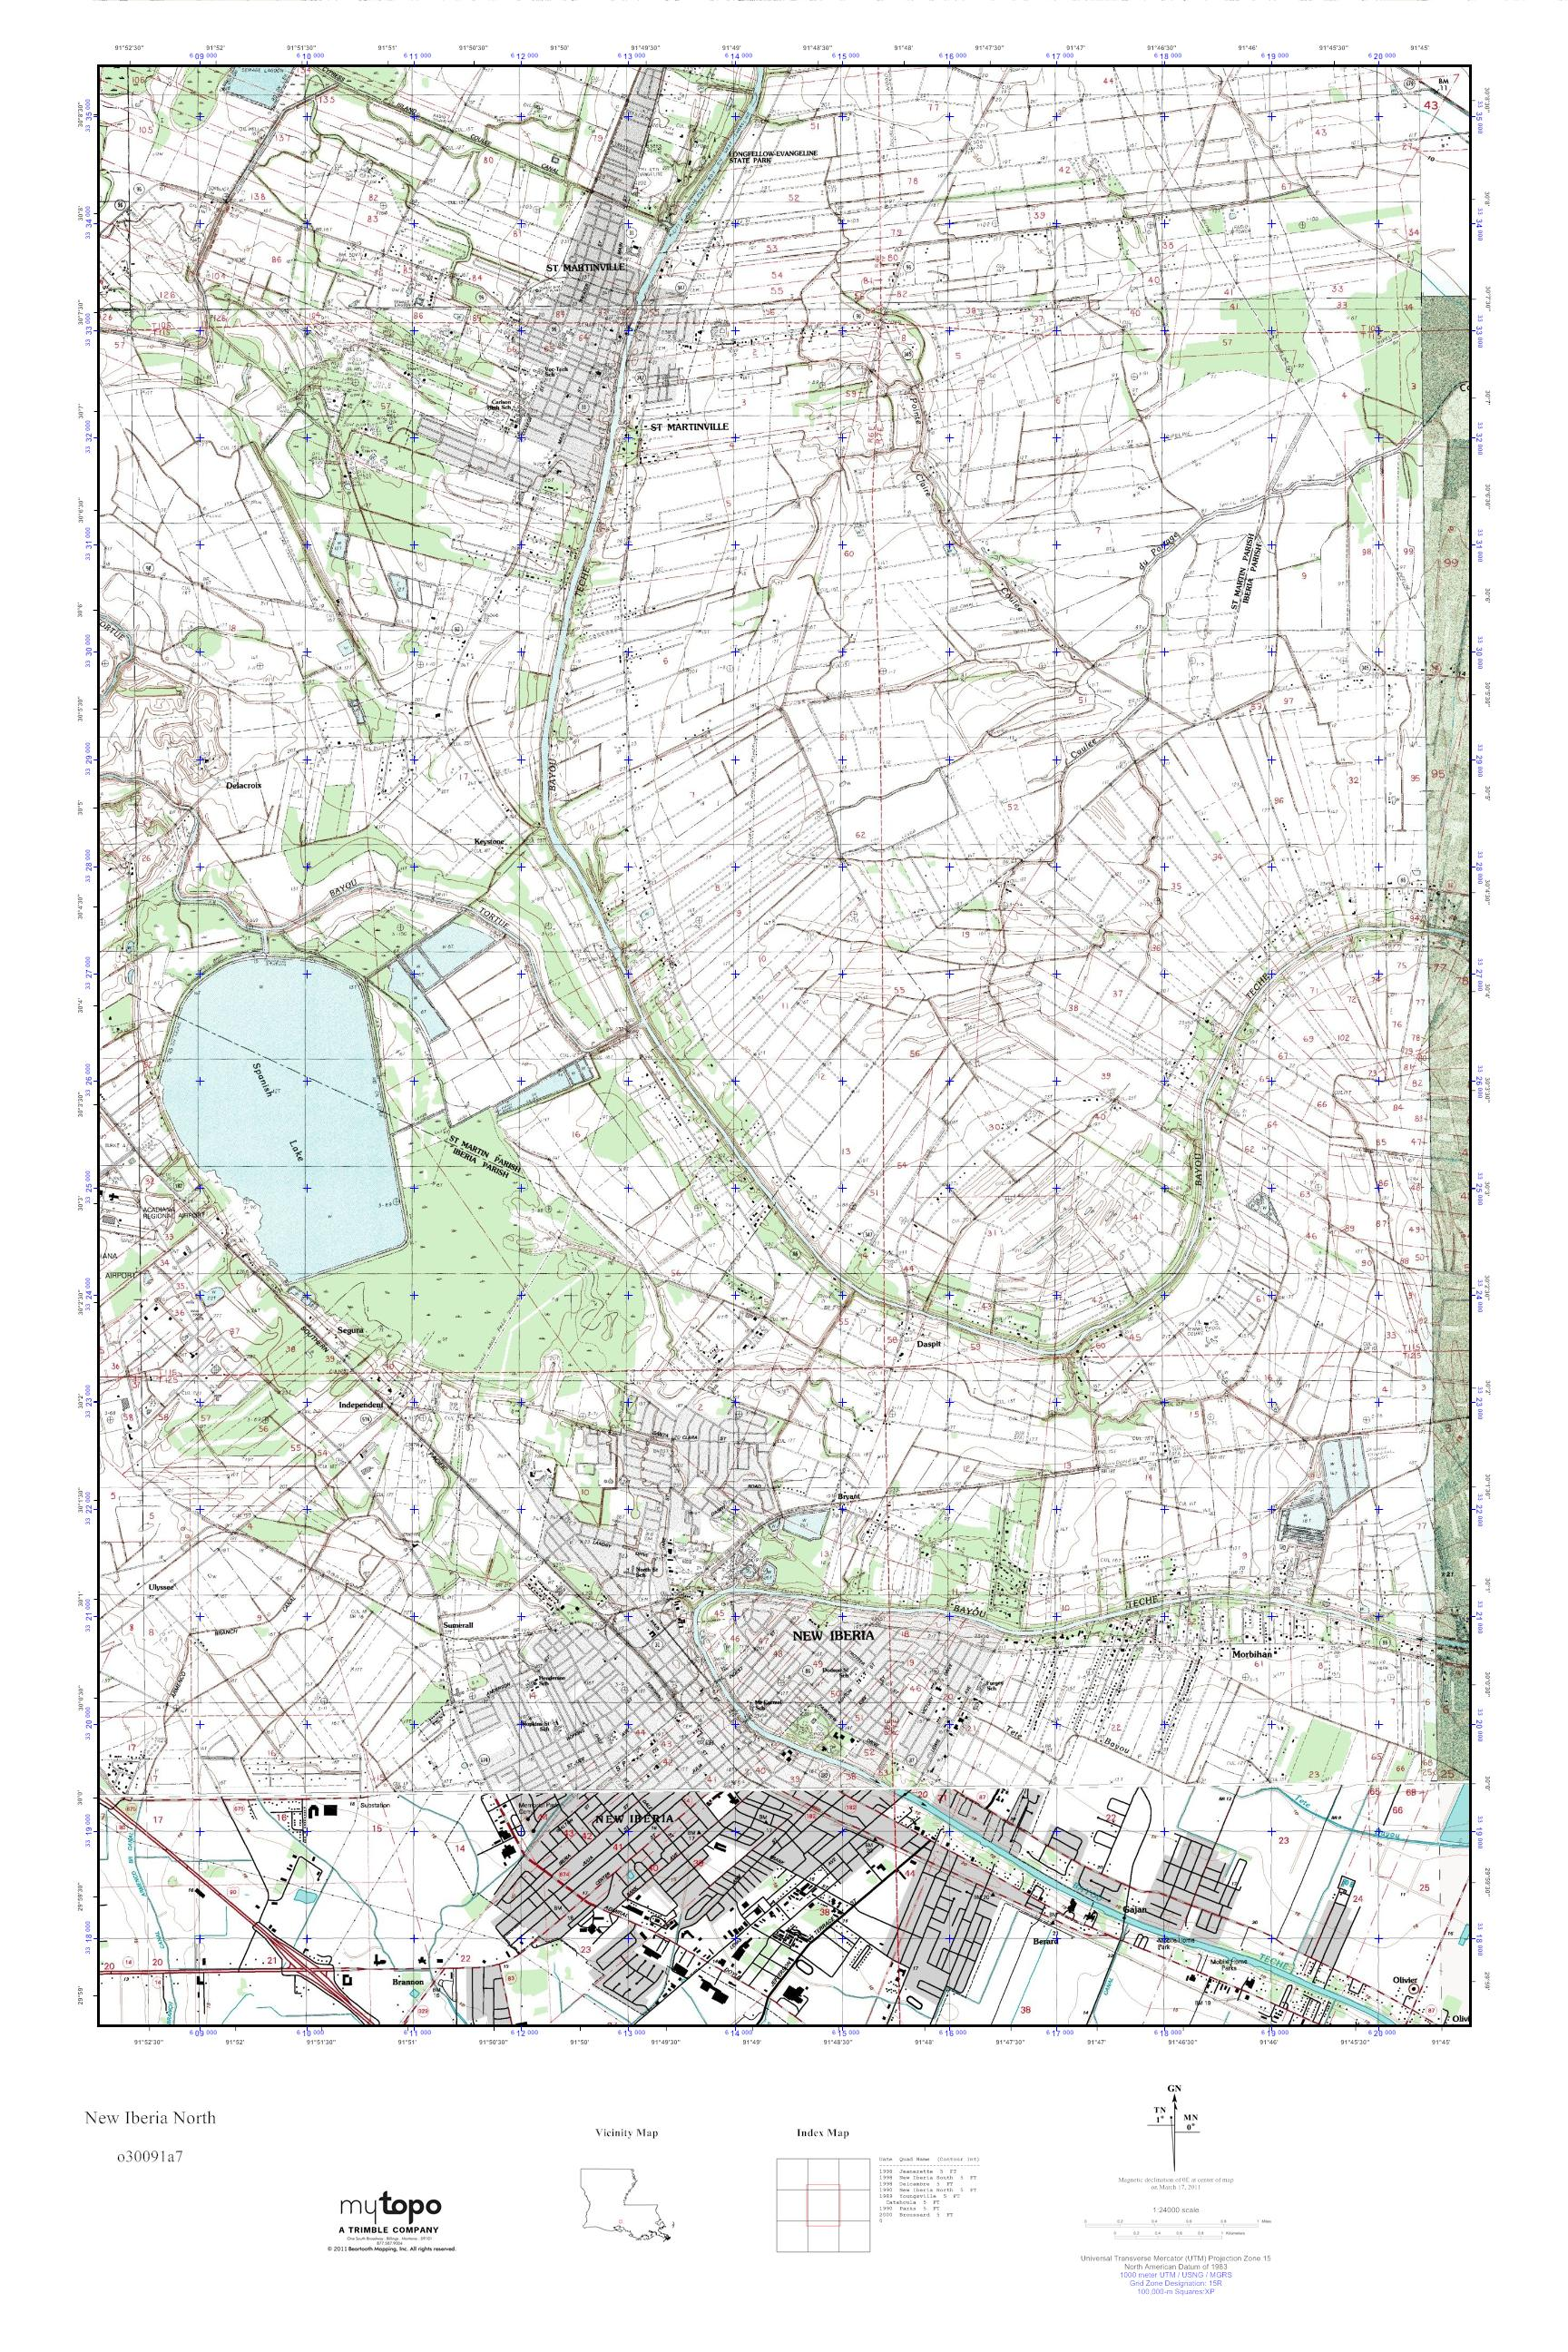 MyTopo New Iberia North Louisiana USGS Quad Topo Map